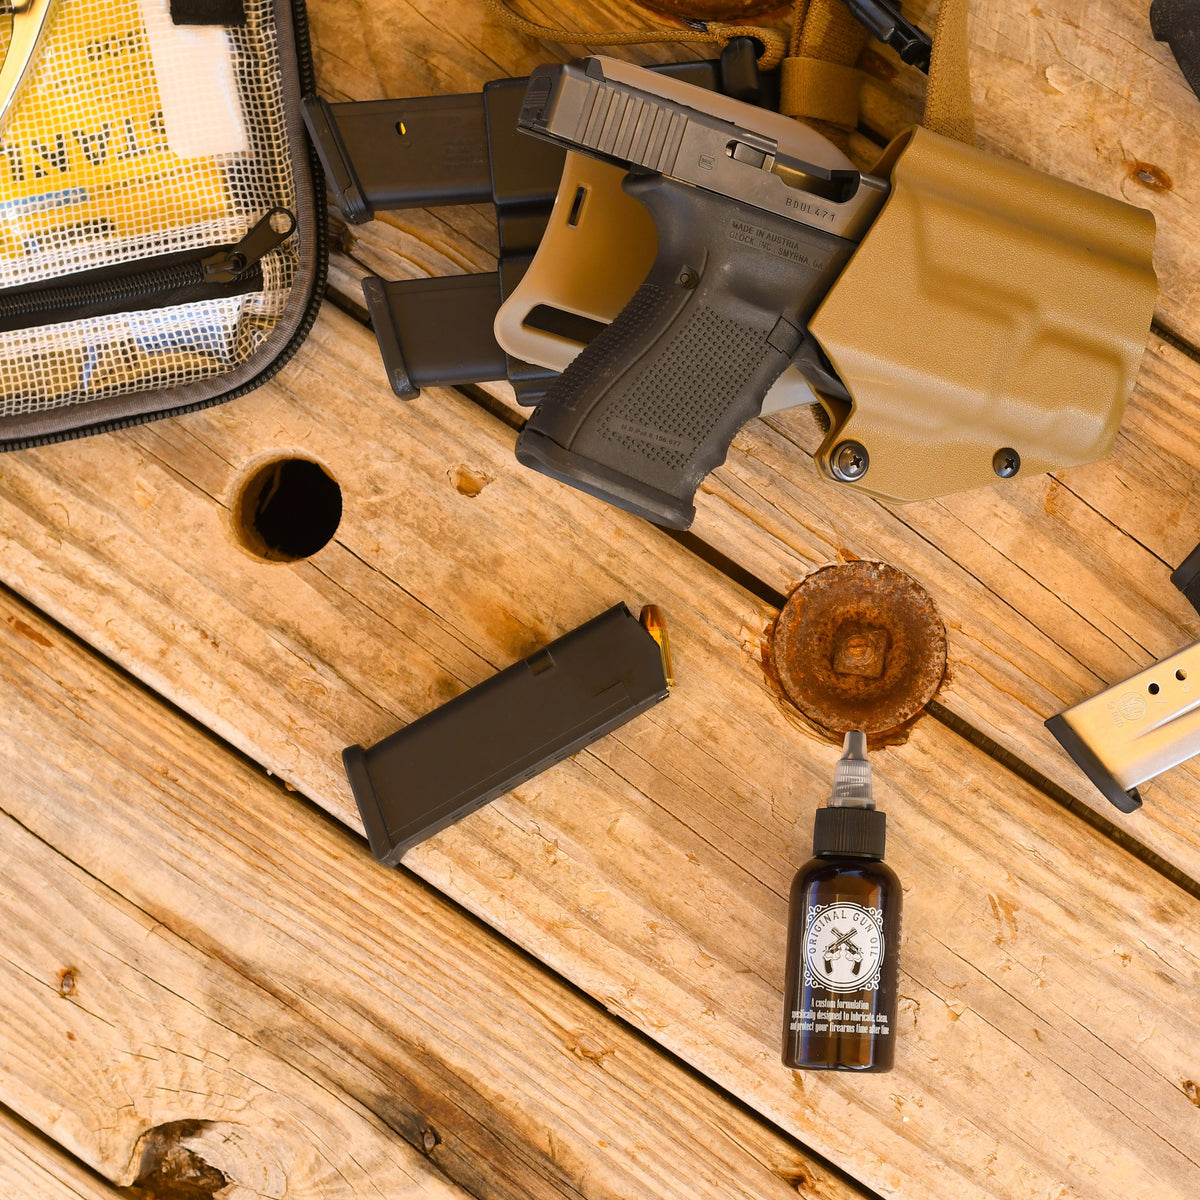 Bottle of Original Gun Oil with Every Day Carry Holster and Hand Gun